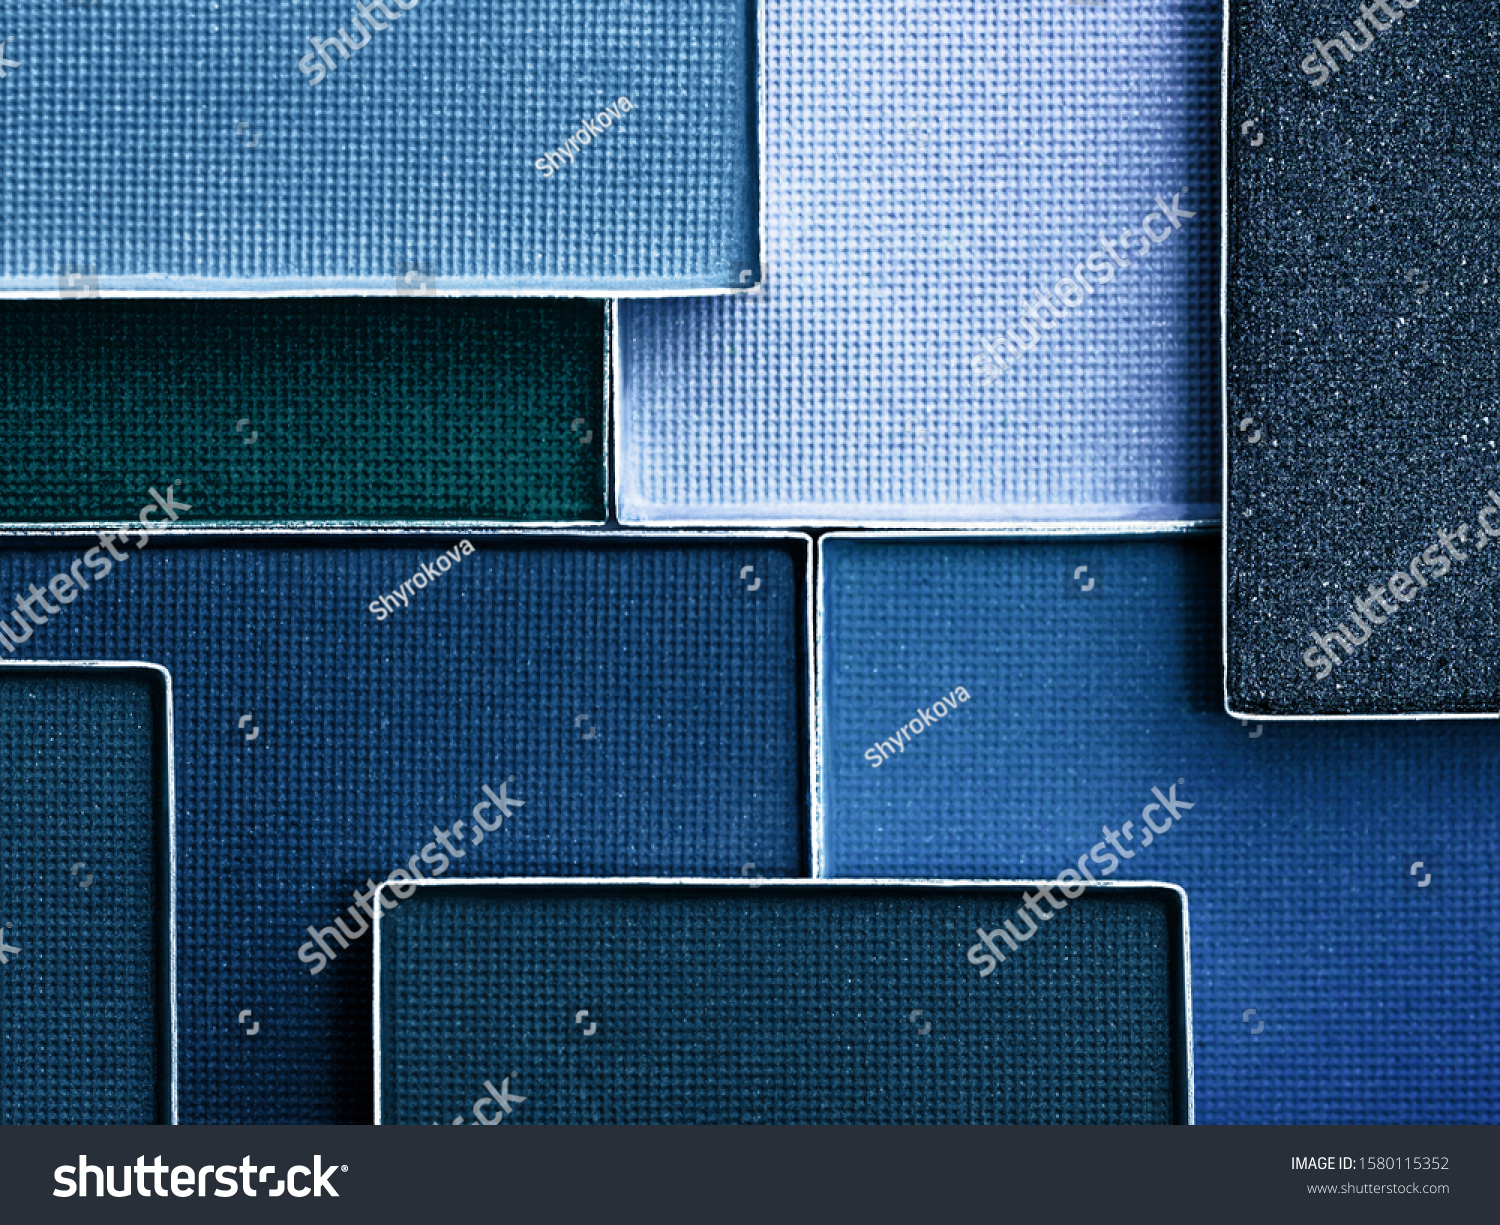 Classic blue palette of eye makeup. Color of the year 2020. Classic blue background. Cosmetics products background in trendy color scheme. #1580115352